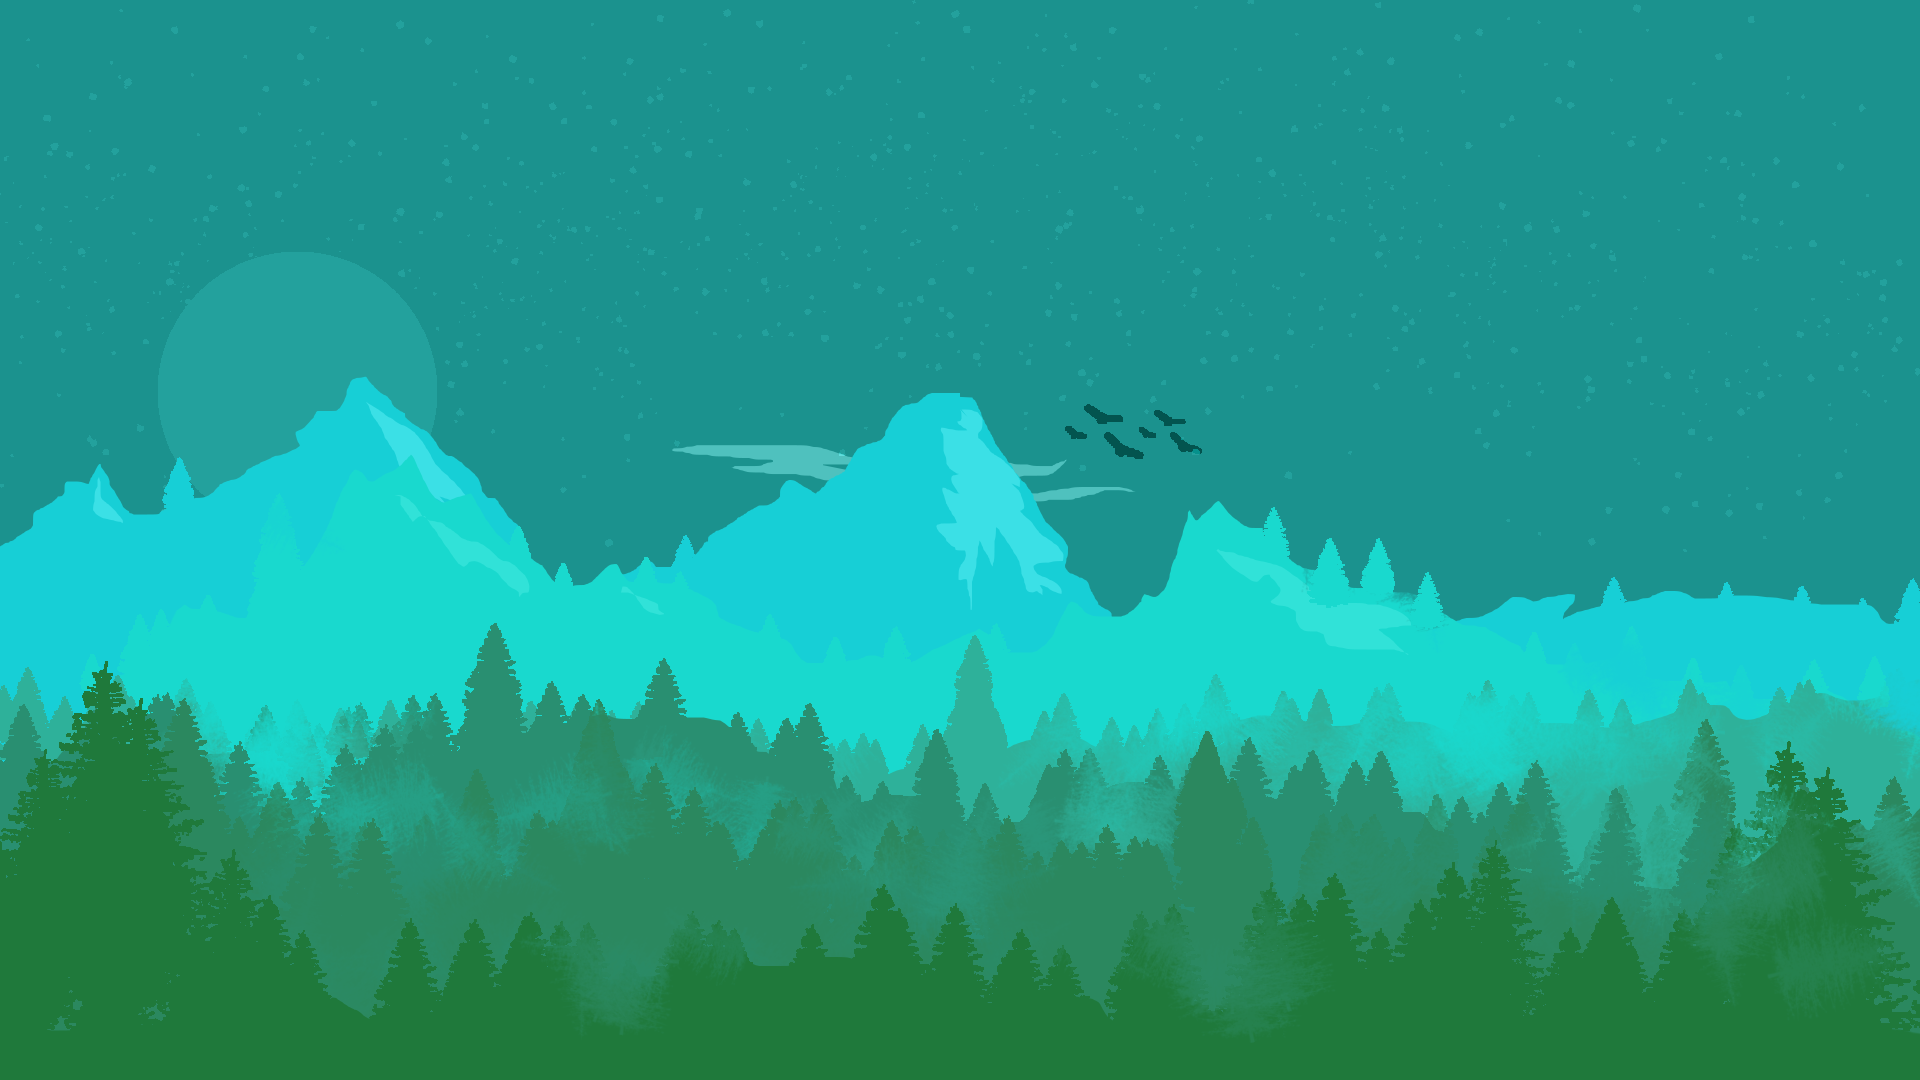 Firewatch style forest wallpaper [1920x1080]